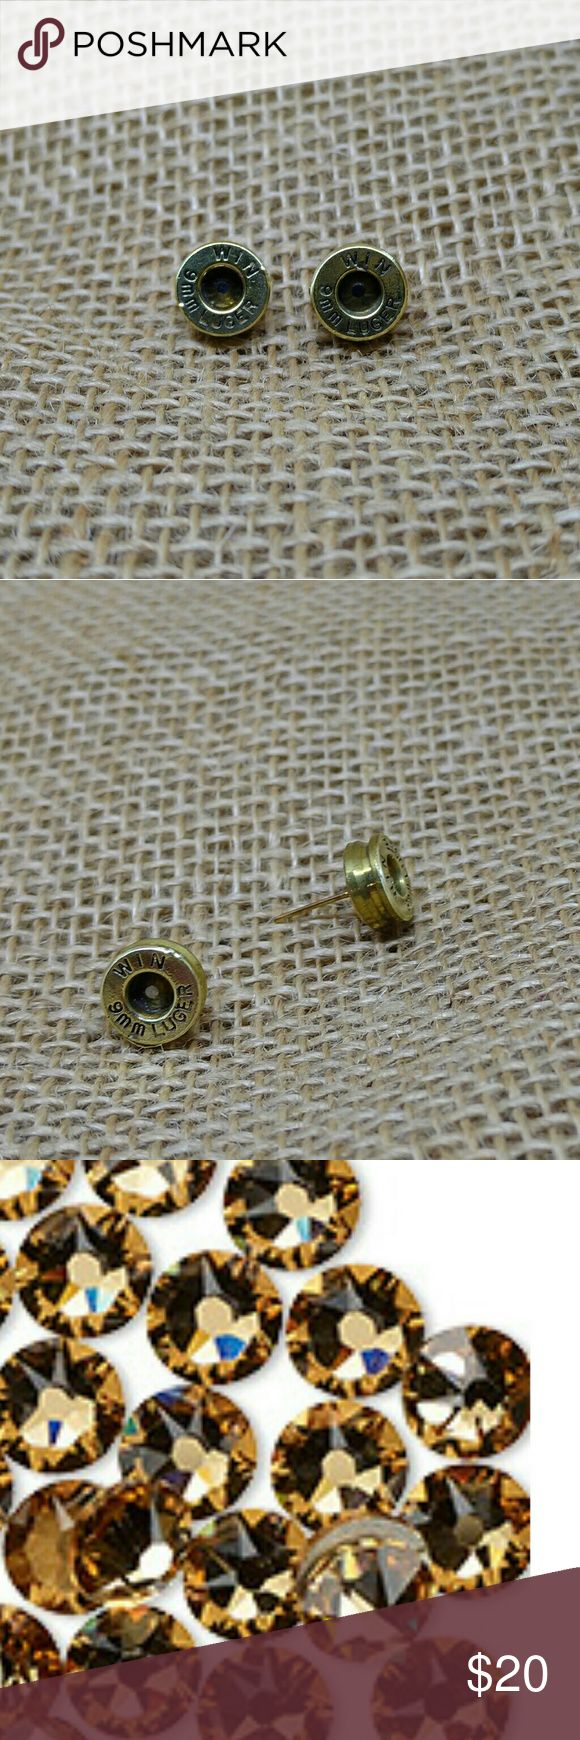 Bullet Stud Earrings 9 mm Earrings made from real 9 mm bullet casings.  Thick cut, cleaned and polished.  Colorado topaz Swarovski crystal centers (see last picture for color).  Hypoallergenic nickel-free studs, they come with wide earring backings.  Handmade by me.    Bullet Earrings Ammunition Jewelry Ammo Earrings Recycled Upcycled Handmade Jewelry Earrings